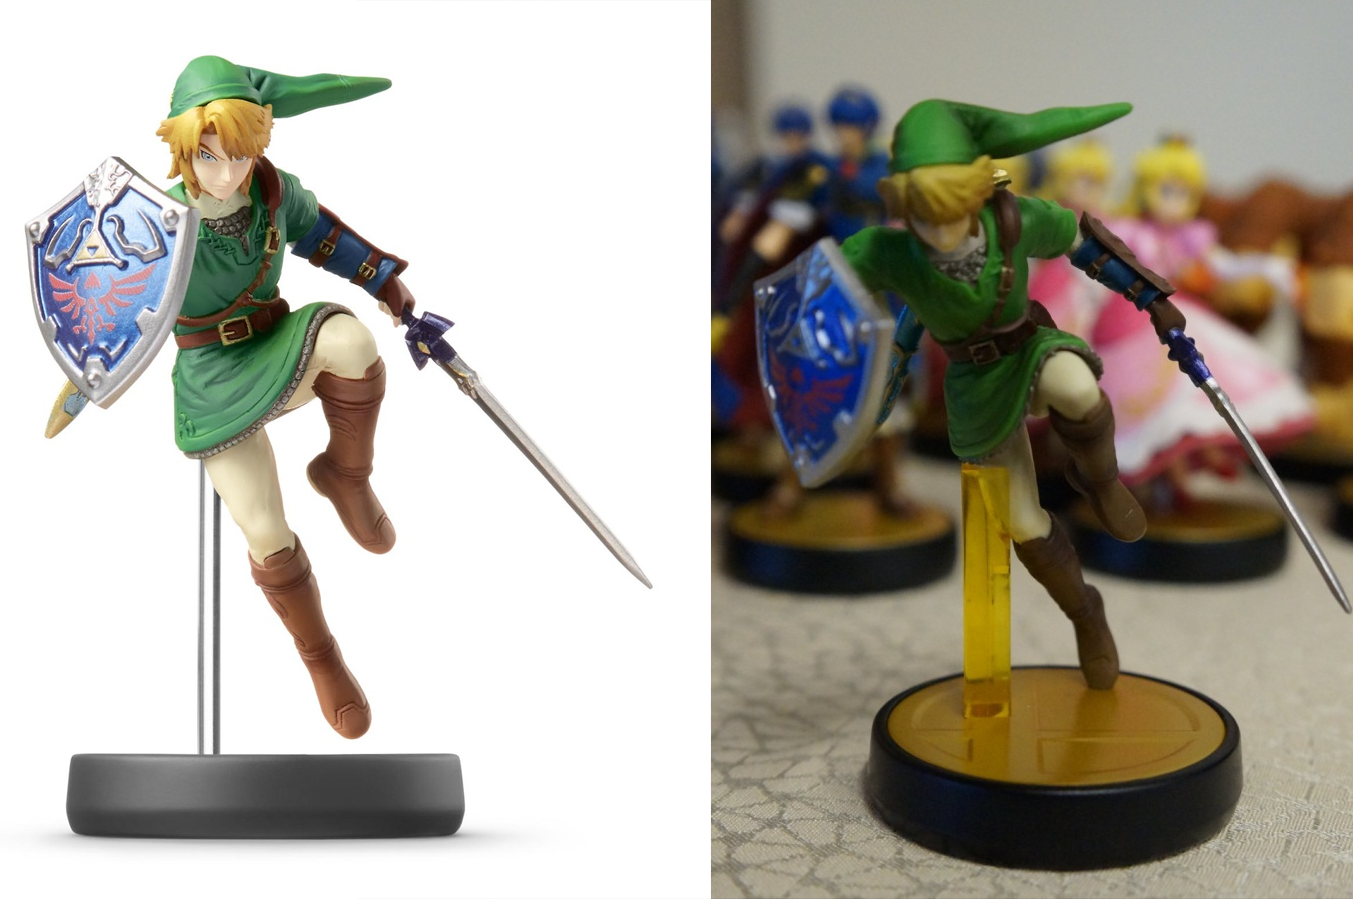 Nintendo's Amiibo Figures Look A Little Bit Different In Production